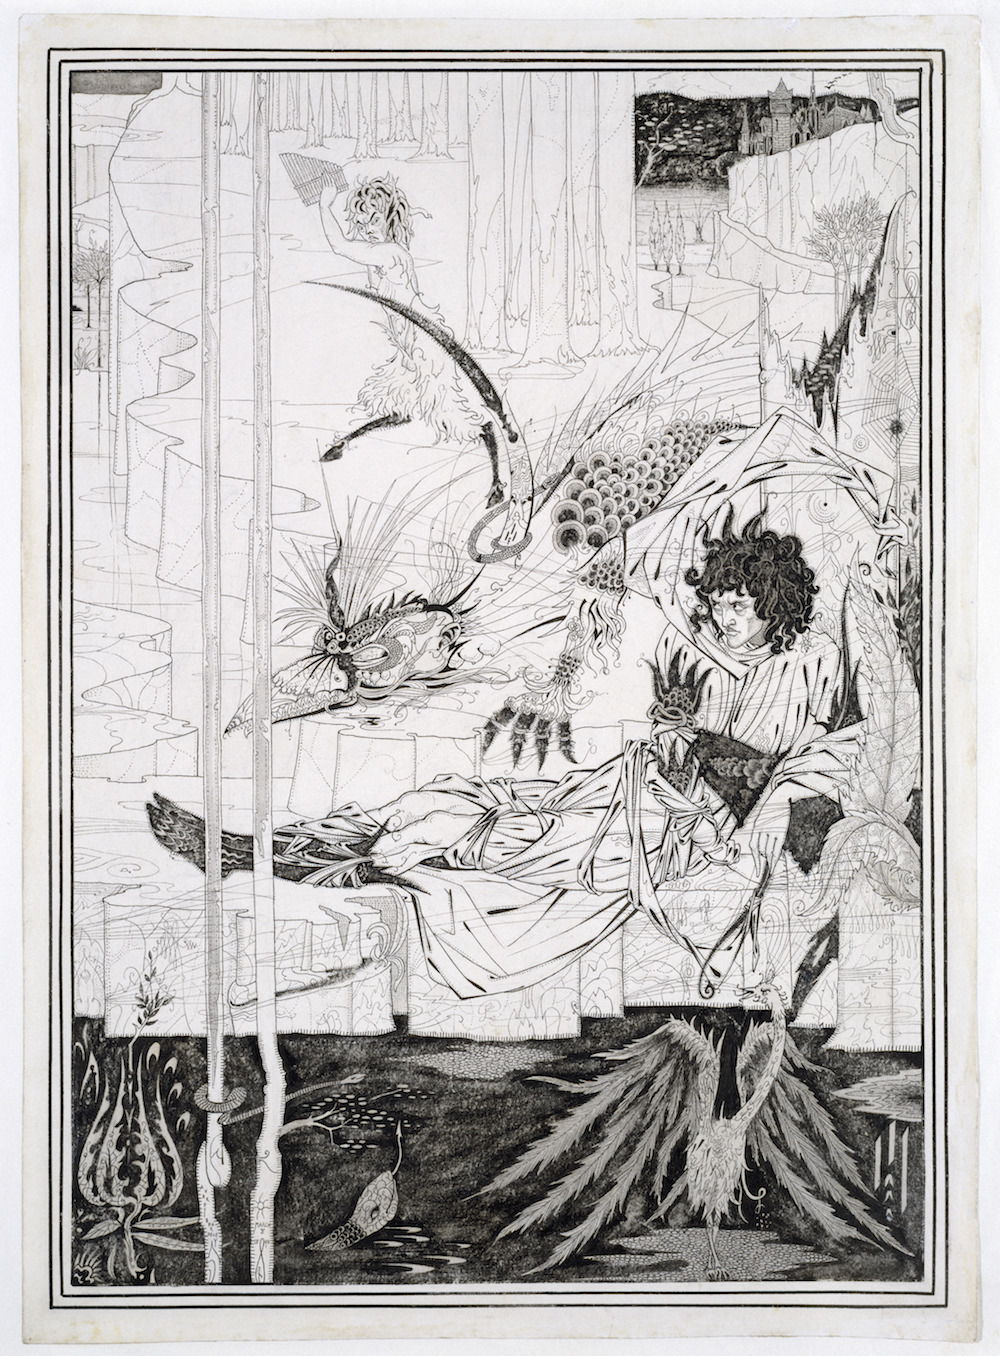 Aubrey Beardsley (1872-1898) How King Arthur Saw the Questing Beast, and thereof had Great Marvel 1893 ink and wash on paper 37, 8 com x 27 cm